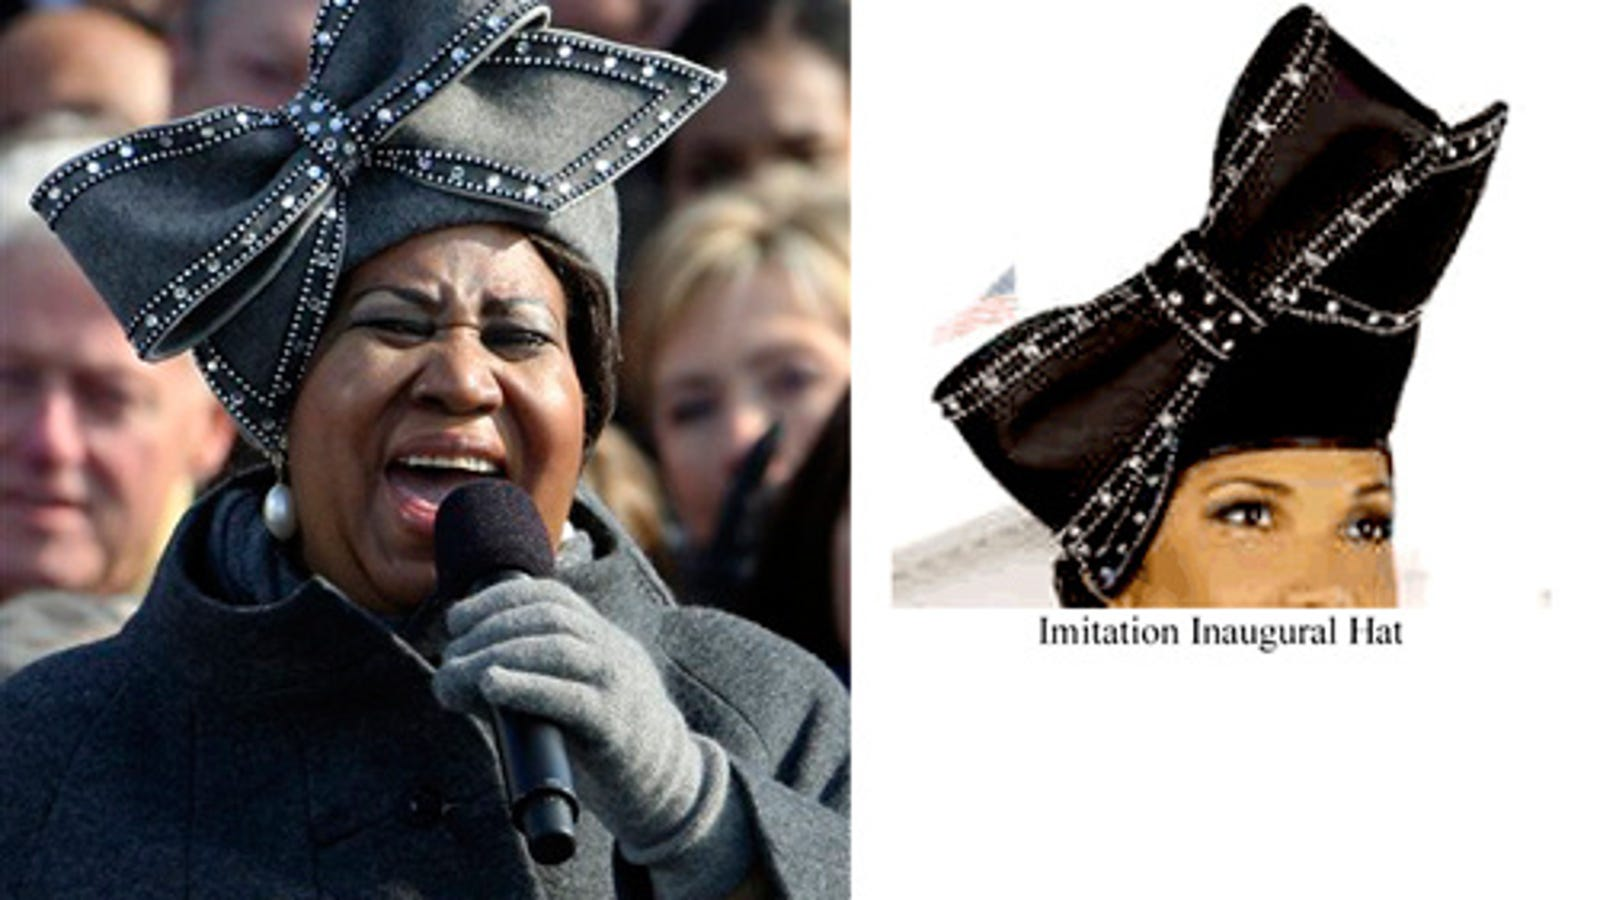 a1a77f45fff Aretha s Inauguration Hat  Makers Of Knock-Offs To Be Sued